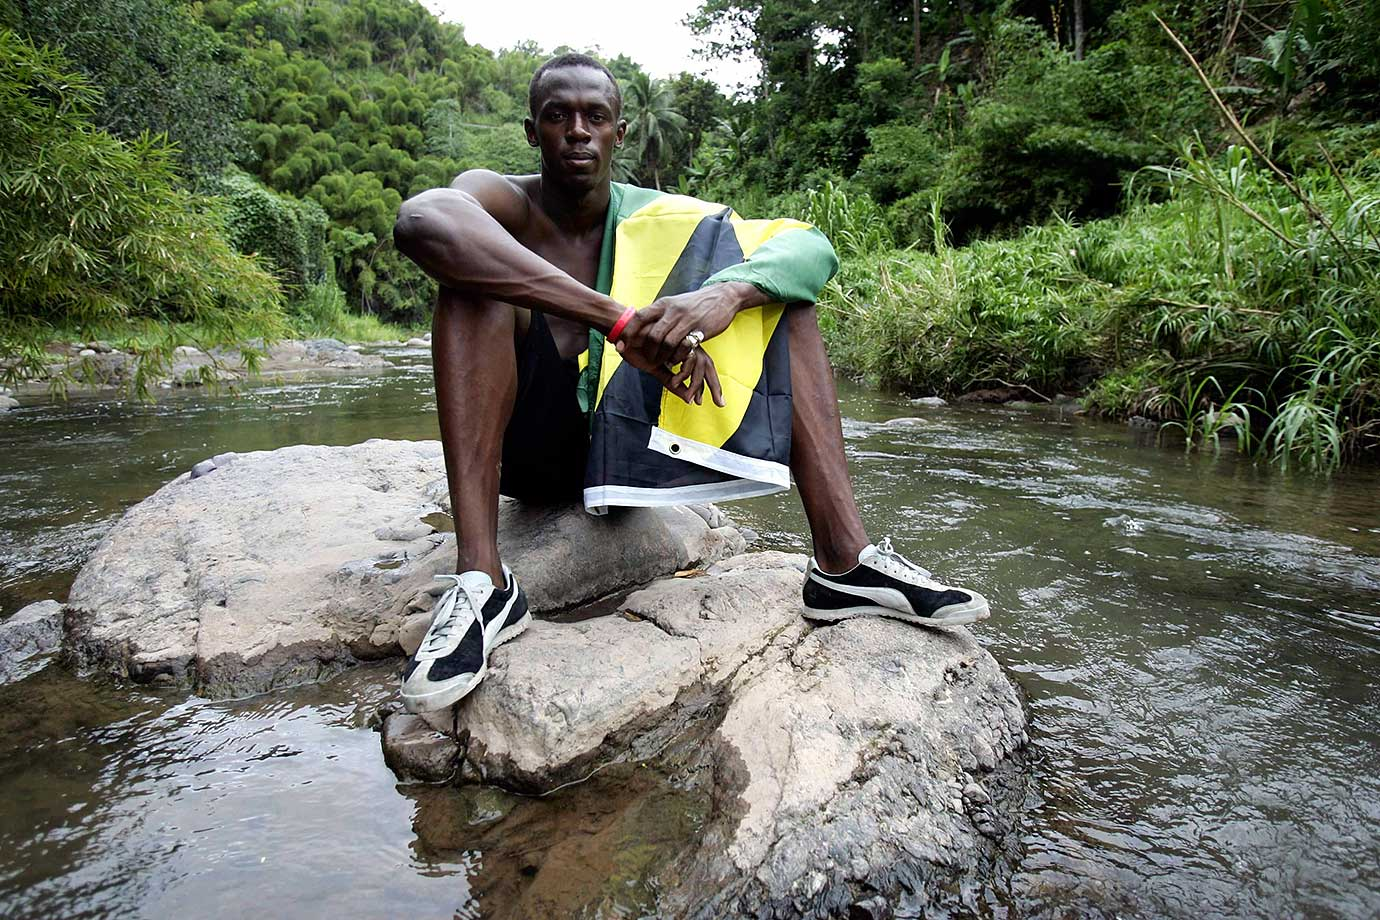 Usain Bolt, pictured here in his native Jamaica in 2007, burst onto the track and field scene at 14. In 2002, at 16, Bolt set the world junior record for the 200m at 19.93 seconds.